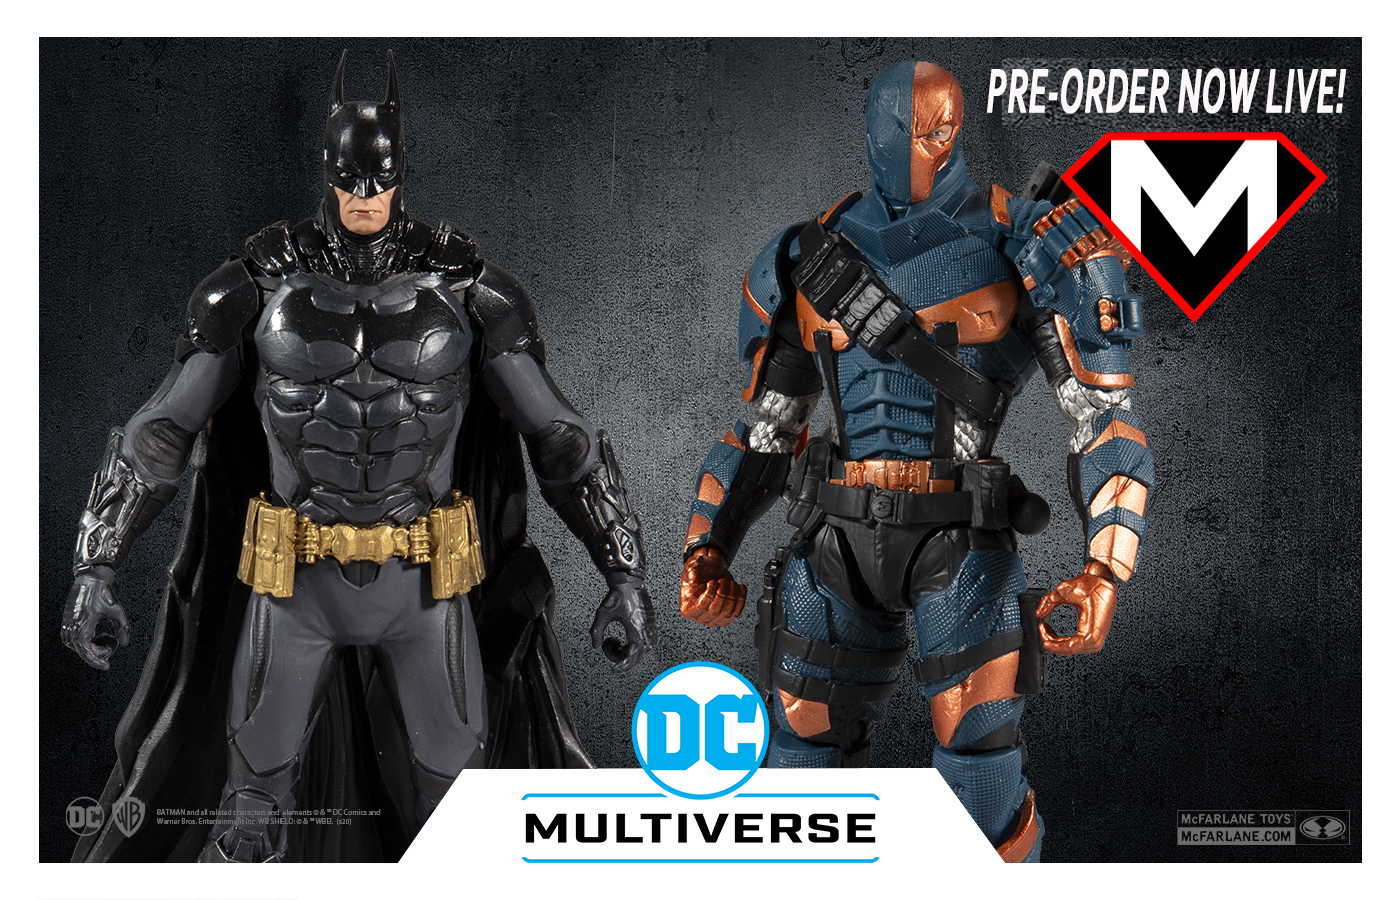 McFarlane Toys Deathstroke and Batman